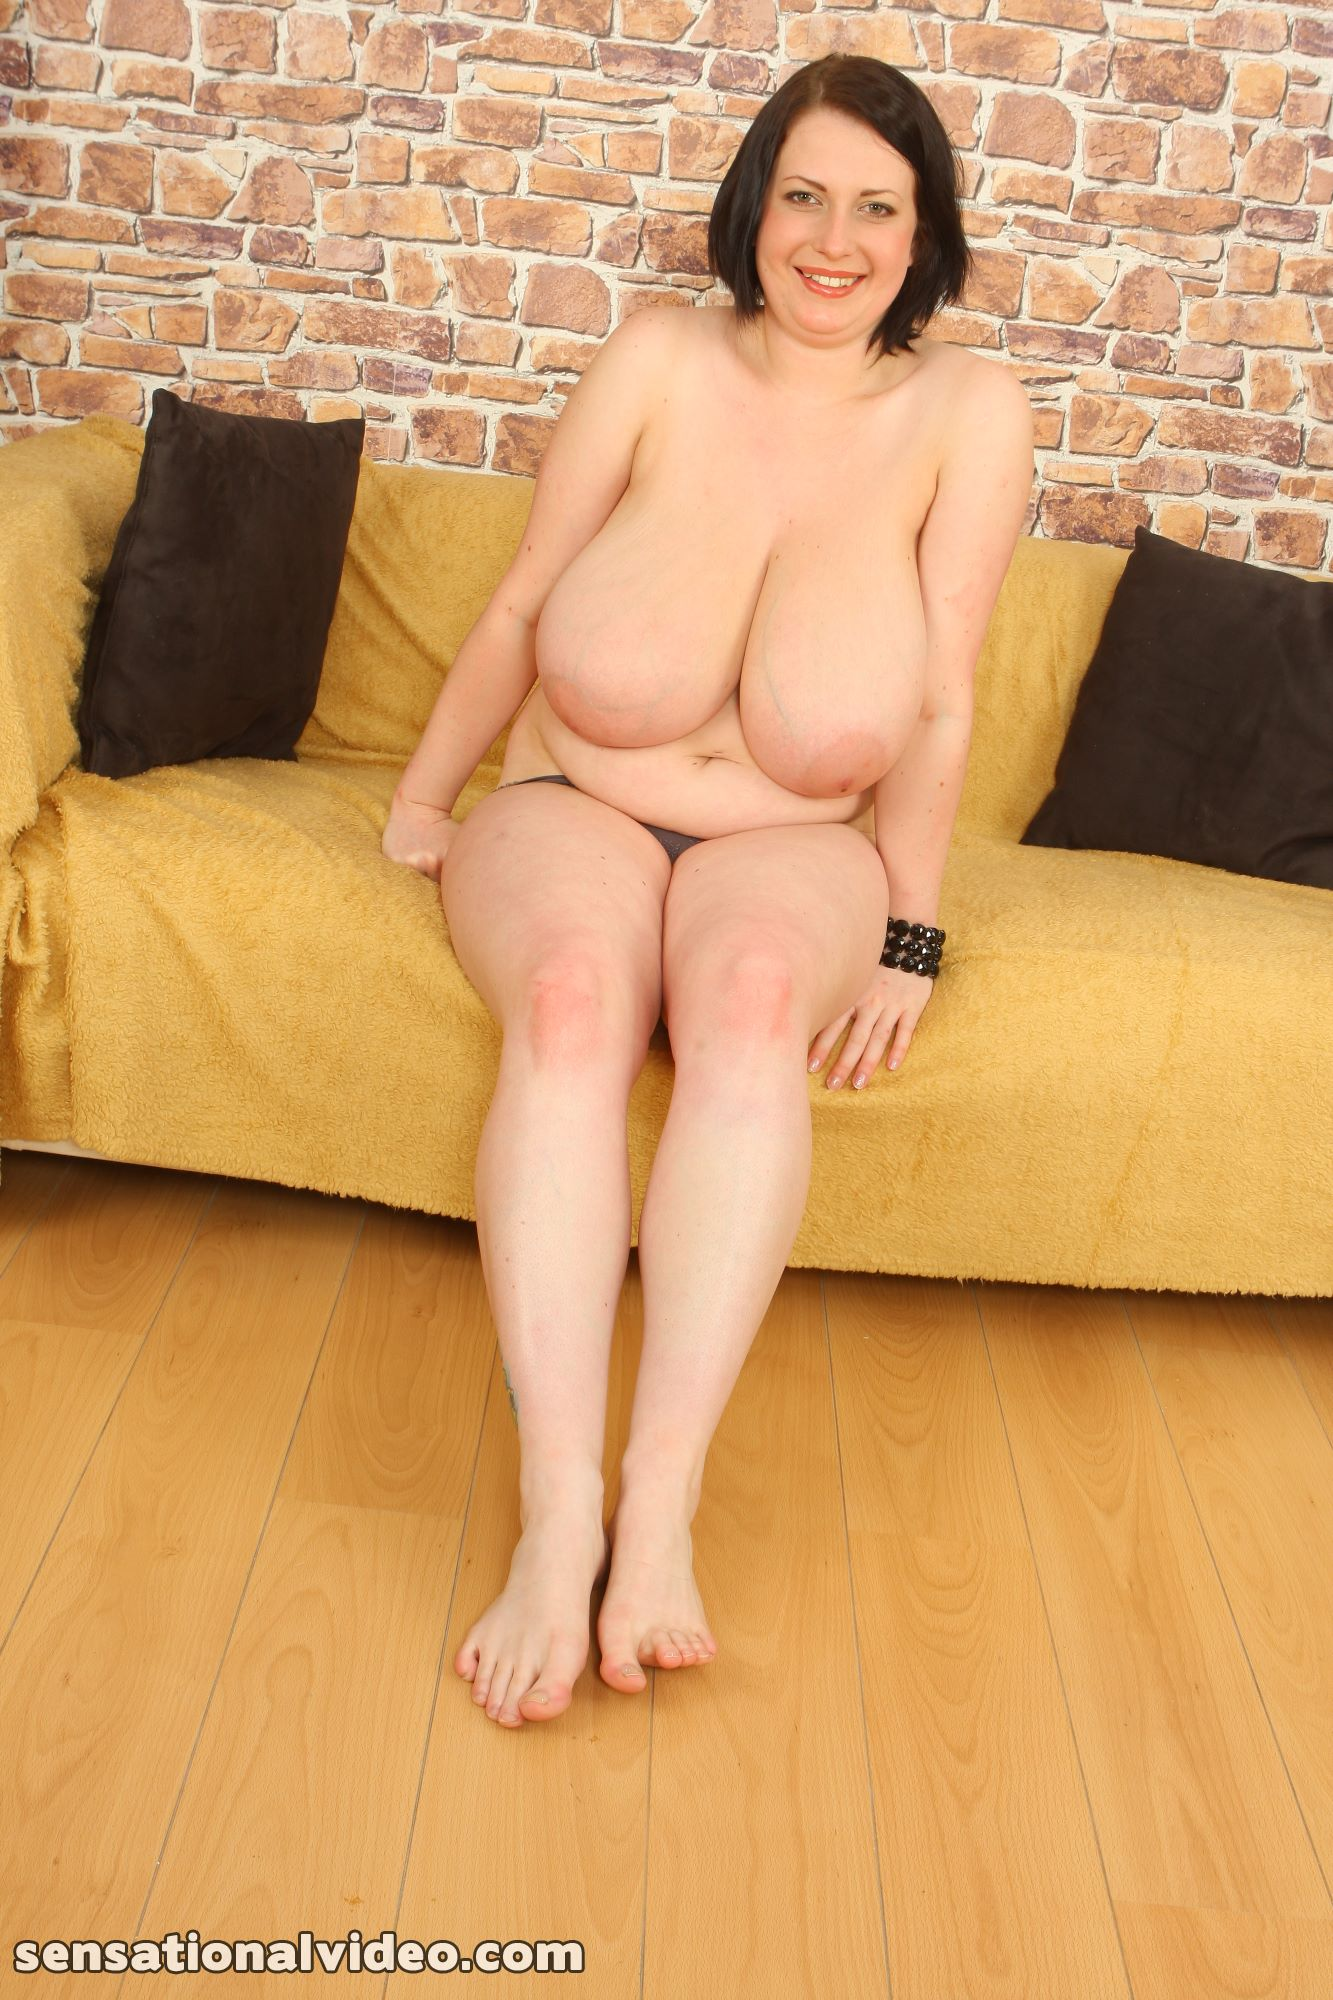 lesgalls spicytitties plumperpass gal535 pic 19